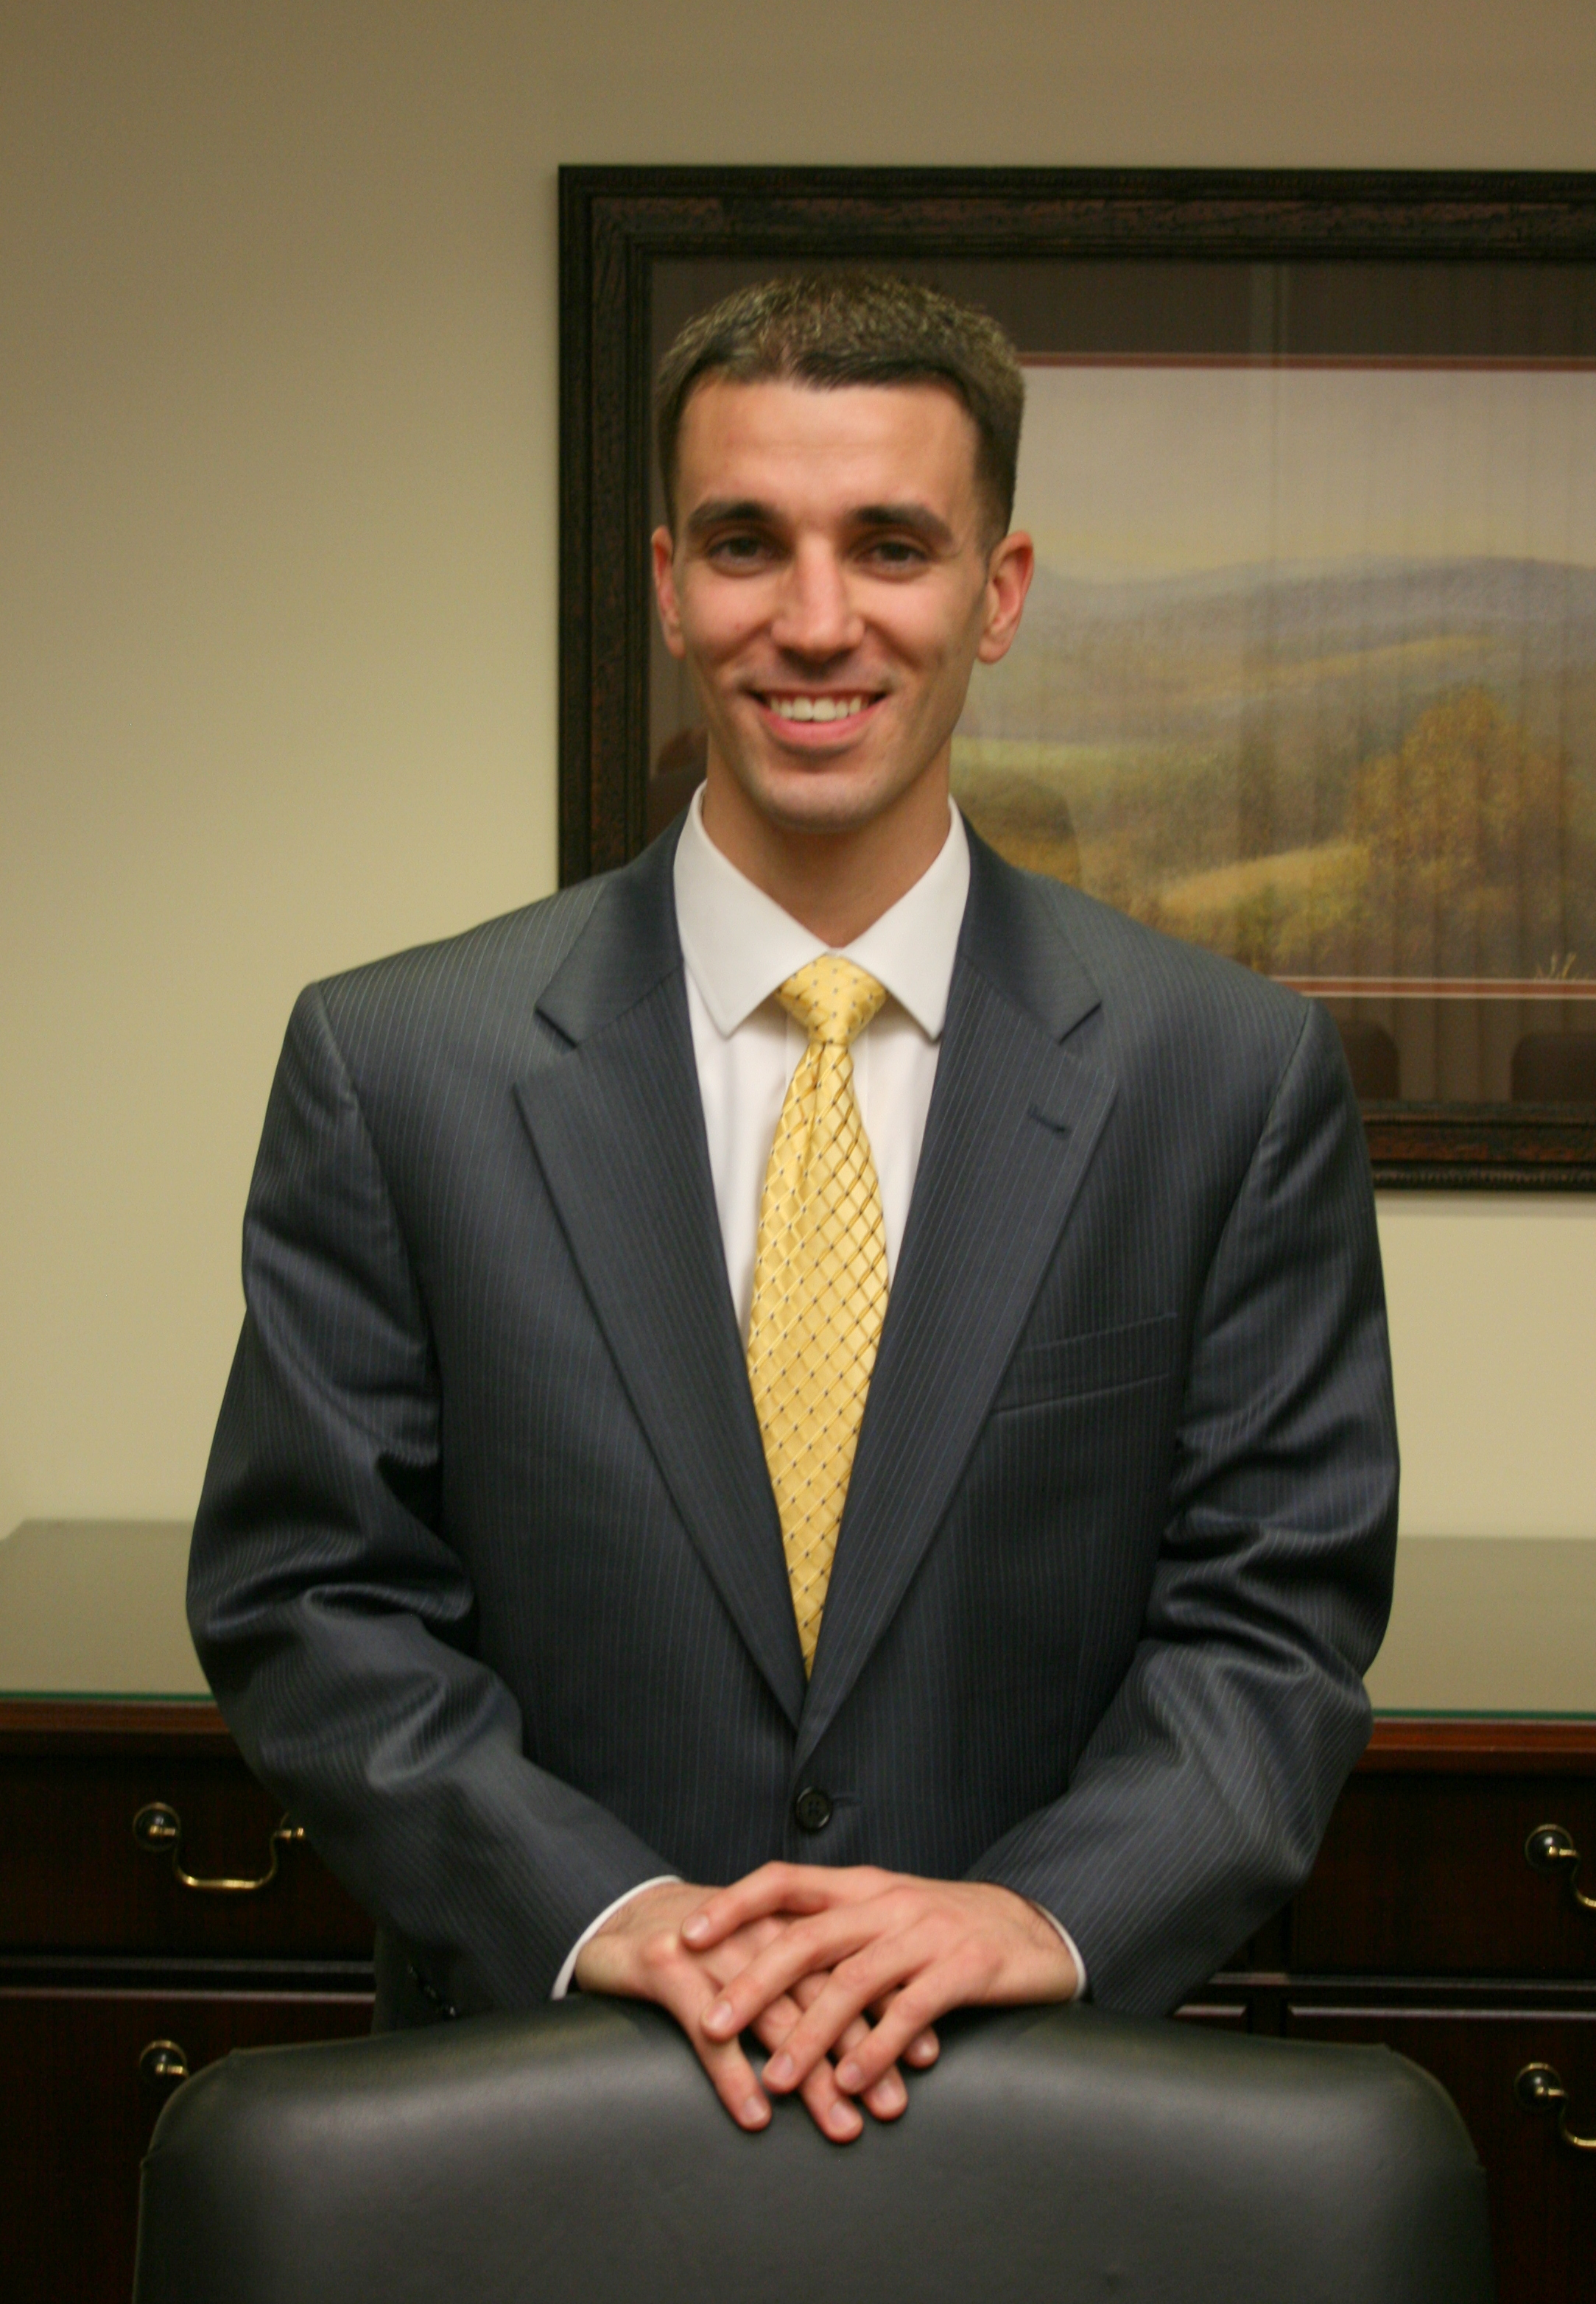 Michael Ryan, financial advisor Derry NH